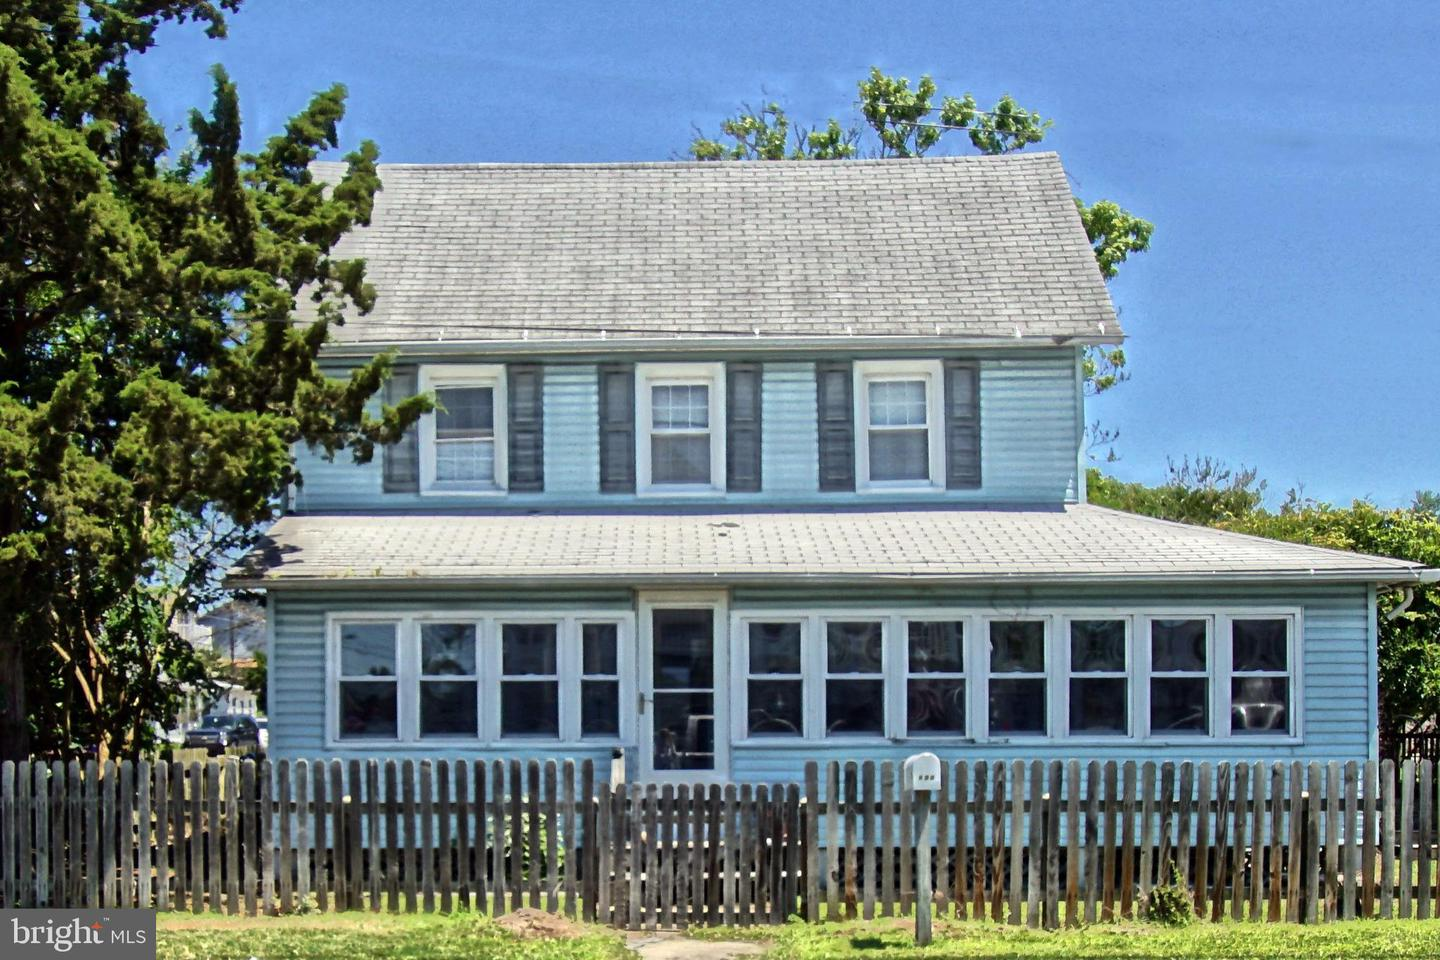 DESU134806-301574771771-2019-05-11-10-20-17 101 Cedar St | Lewes, DE Real Estate For Sale | MLS# Desu134806  - Lee Ann Group